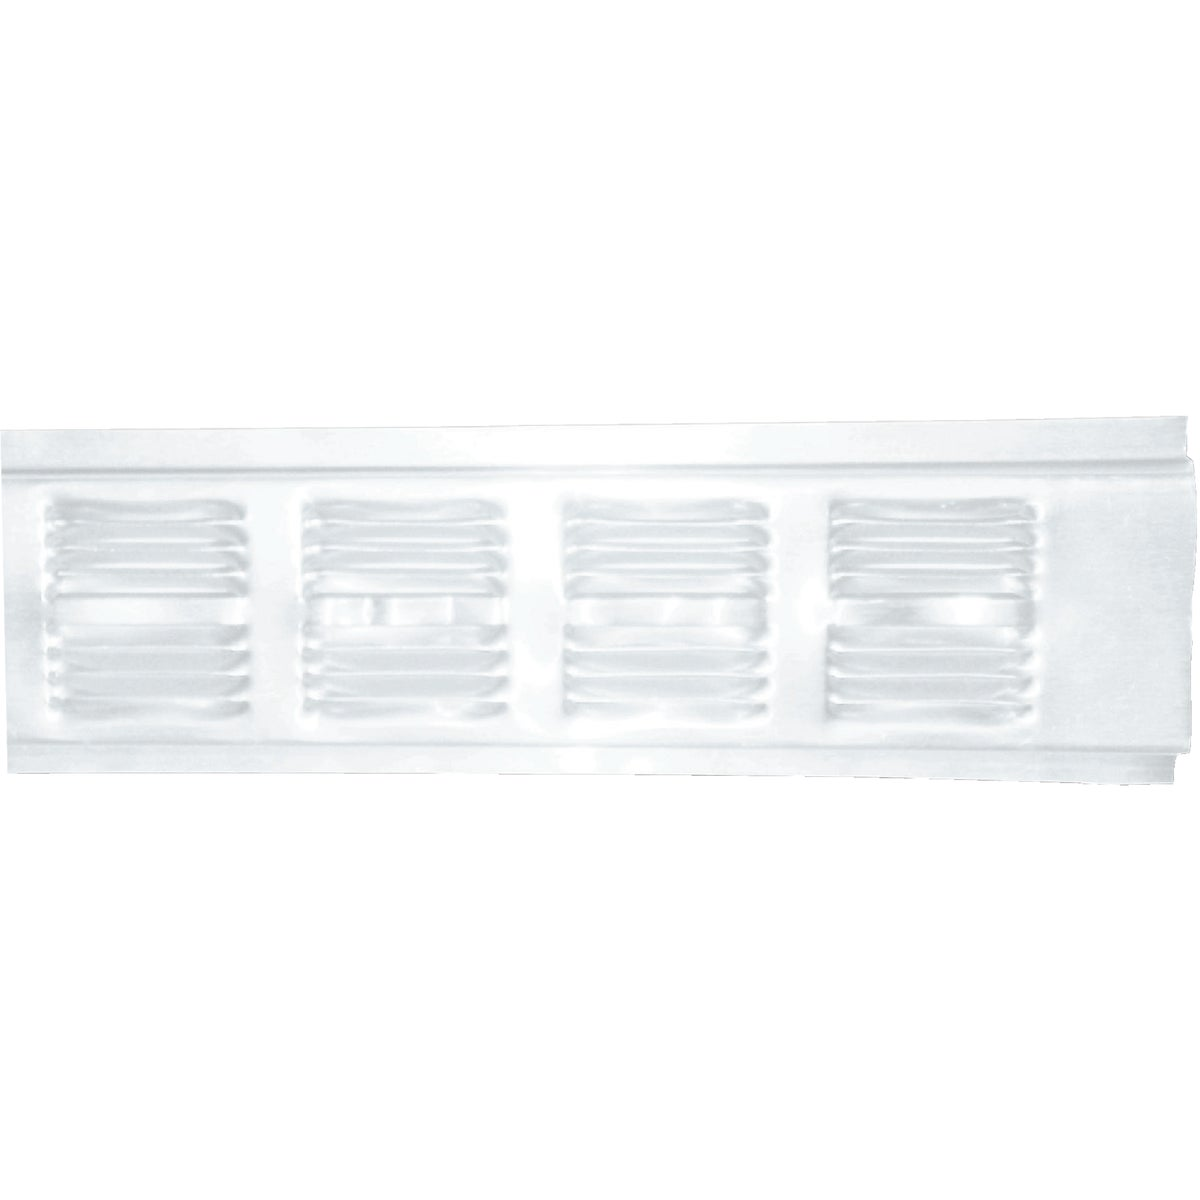 8' WHT ALUM SOFFIT VENT - 84302 by Air Vent Inc